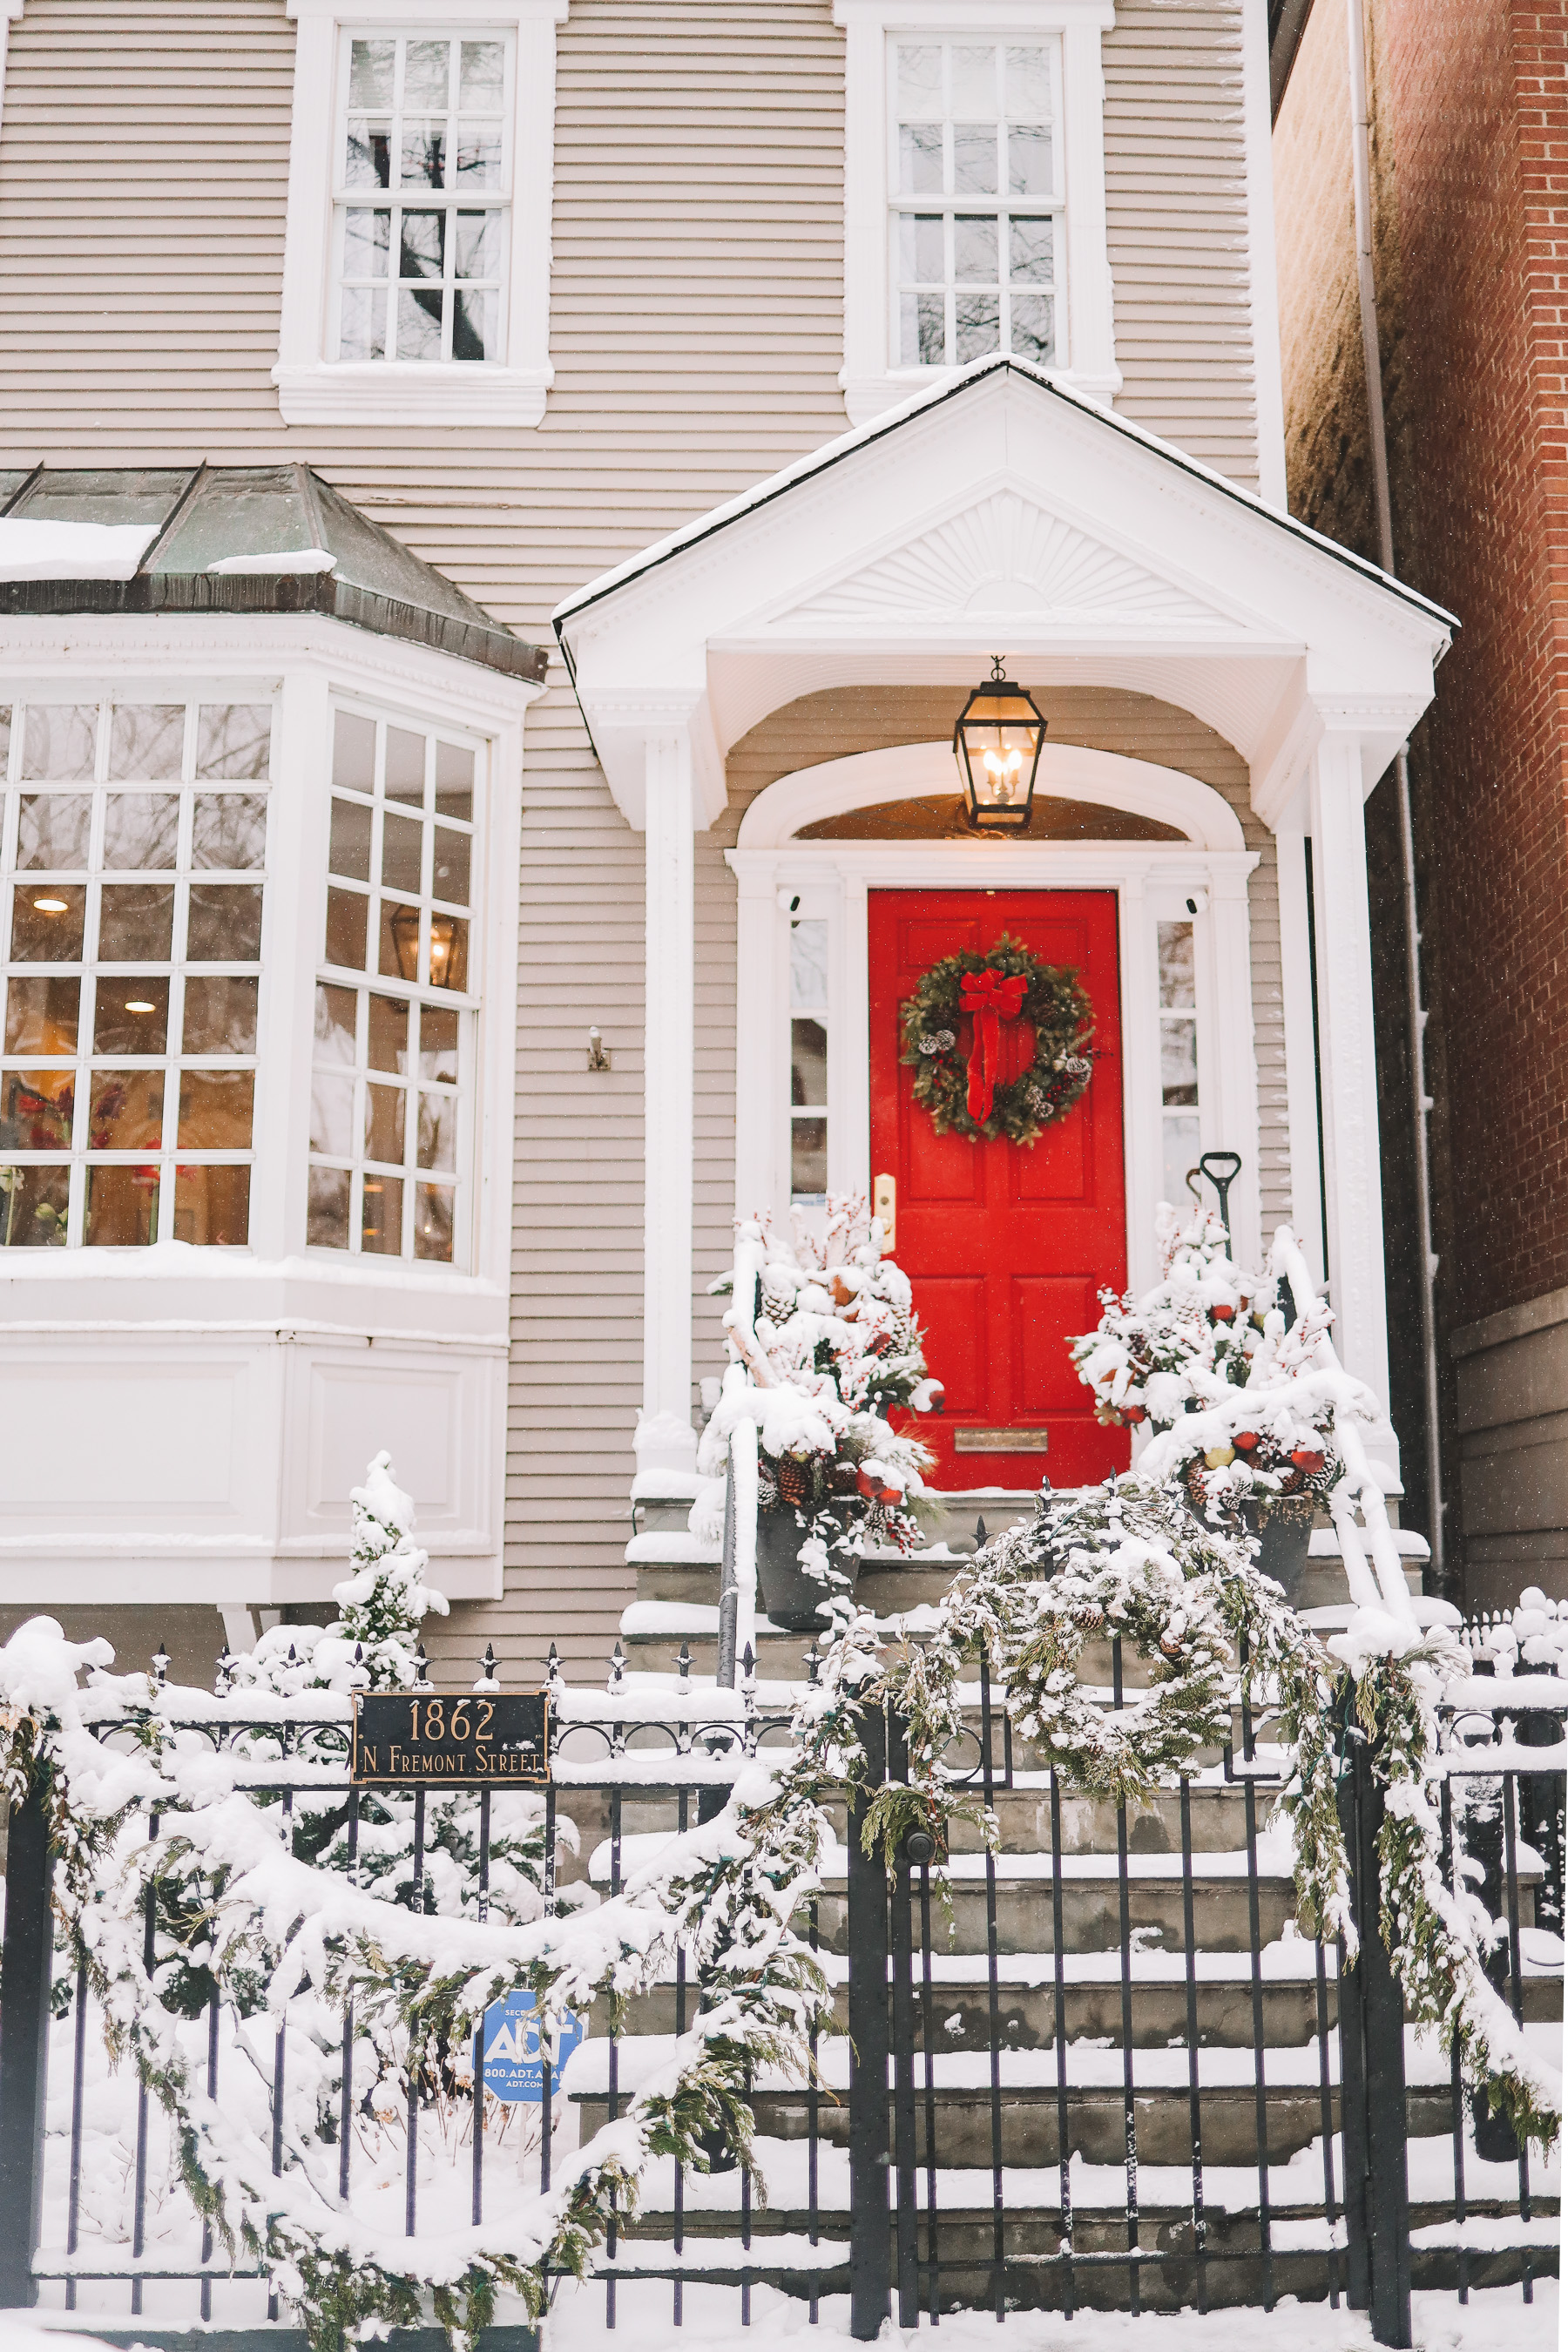 chicago house in winter